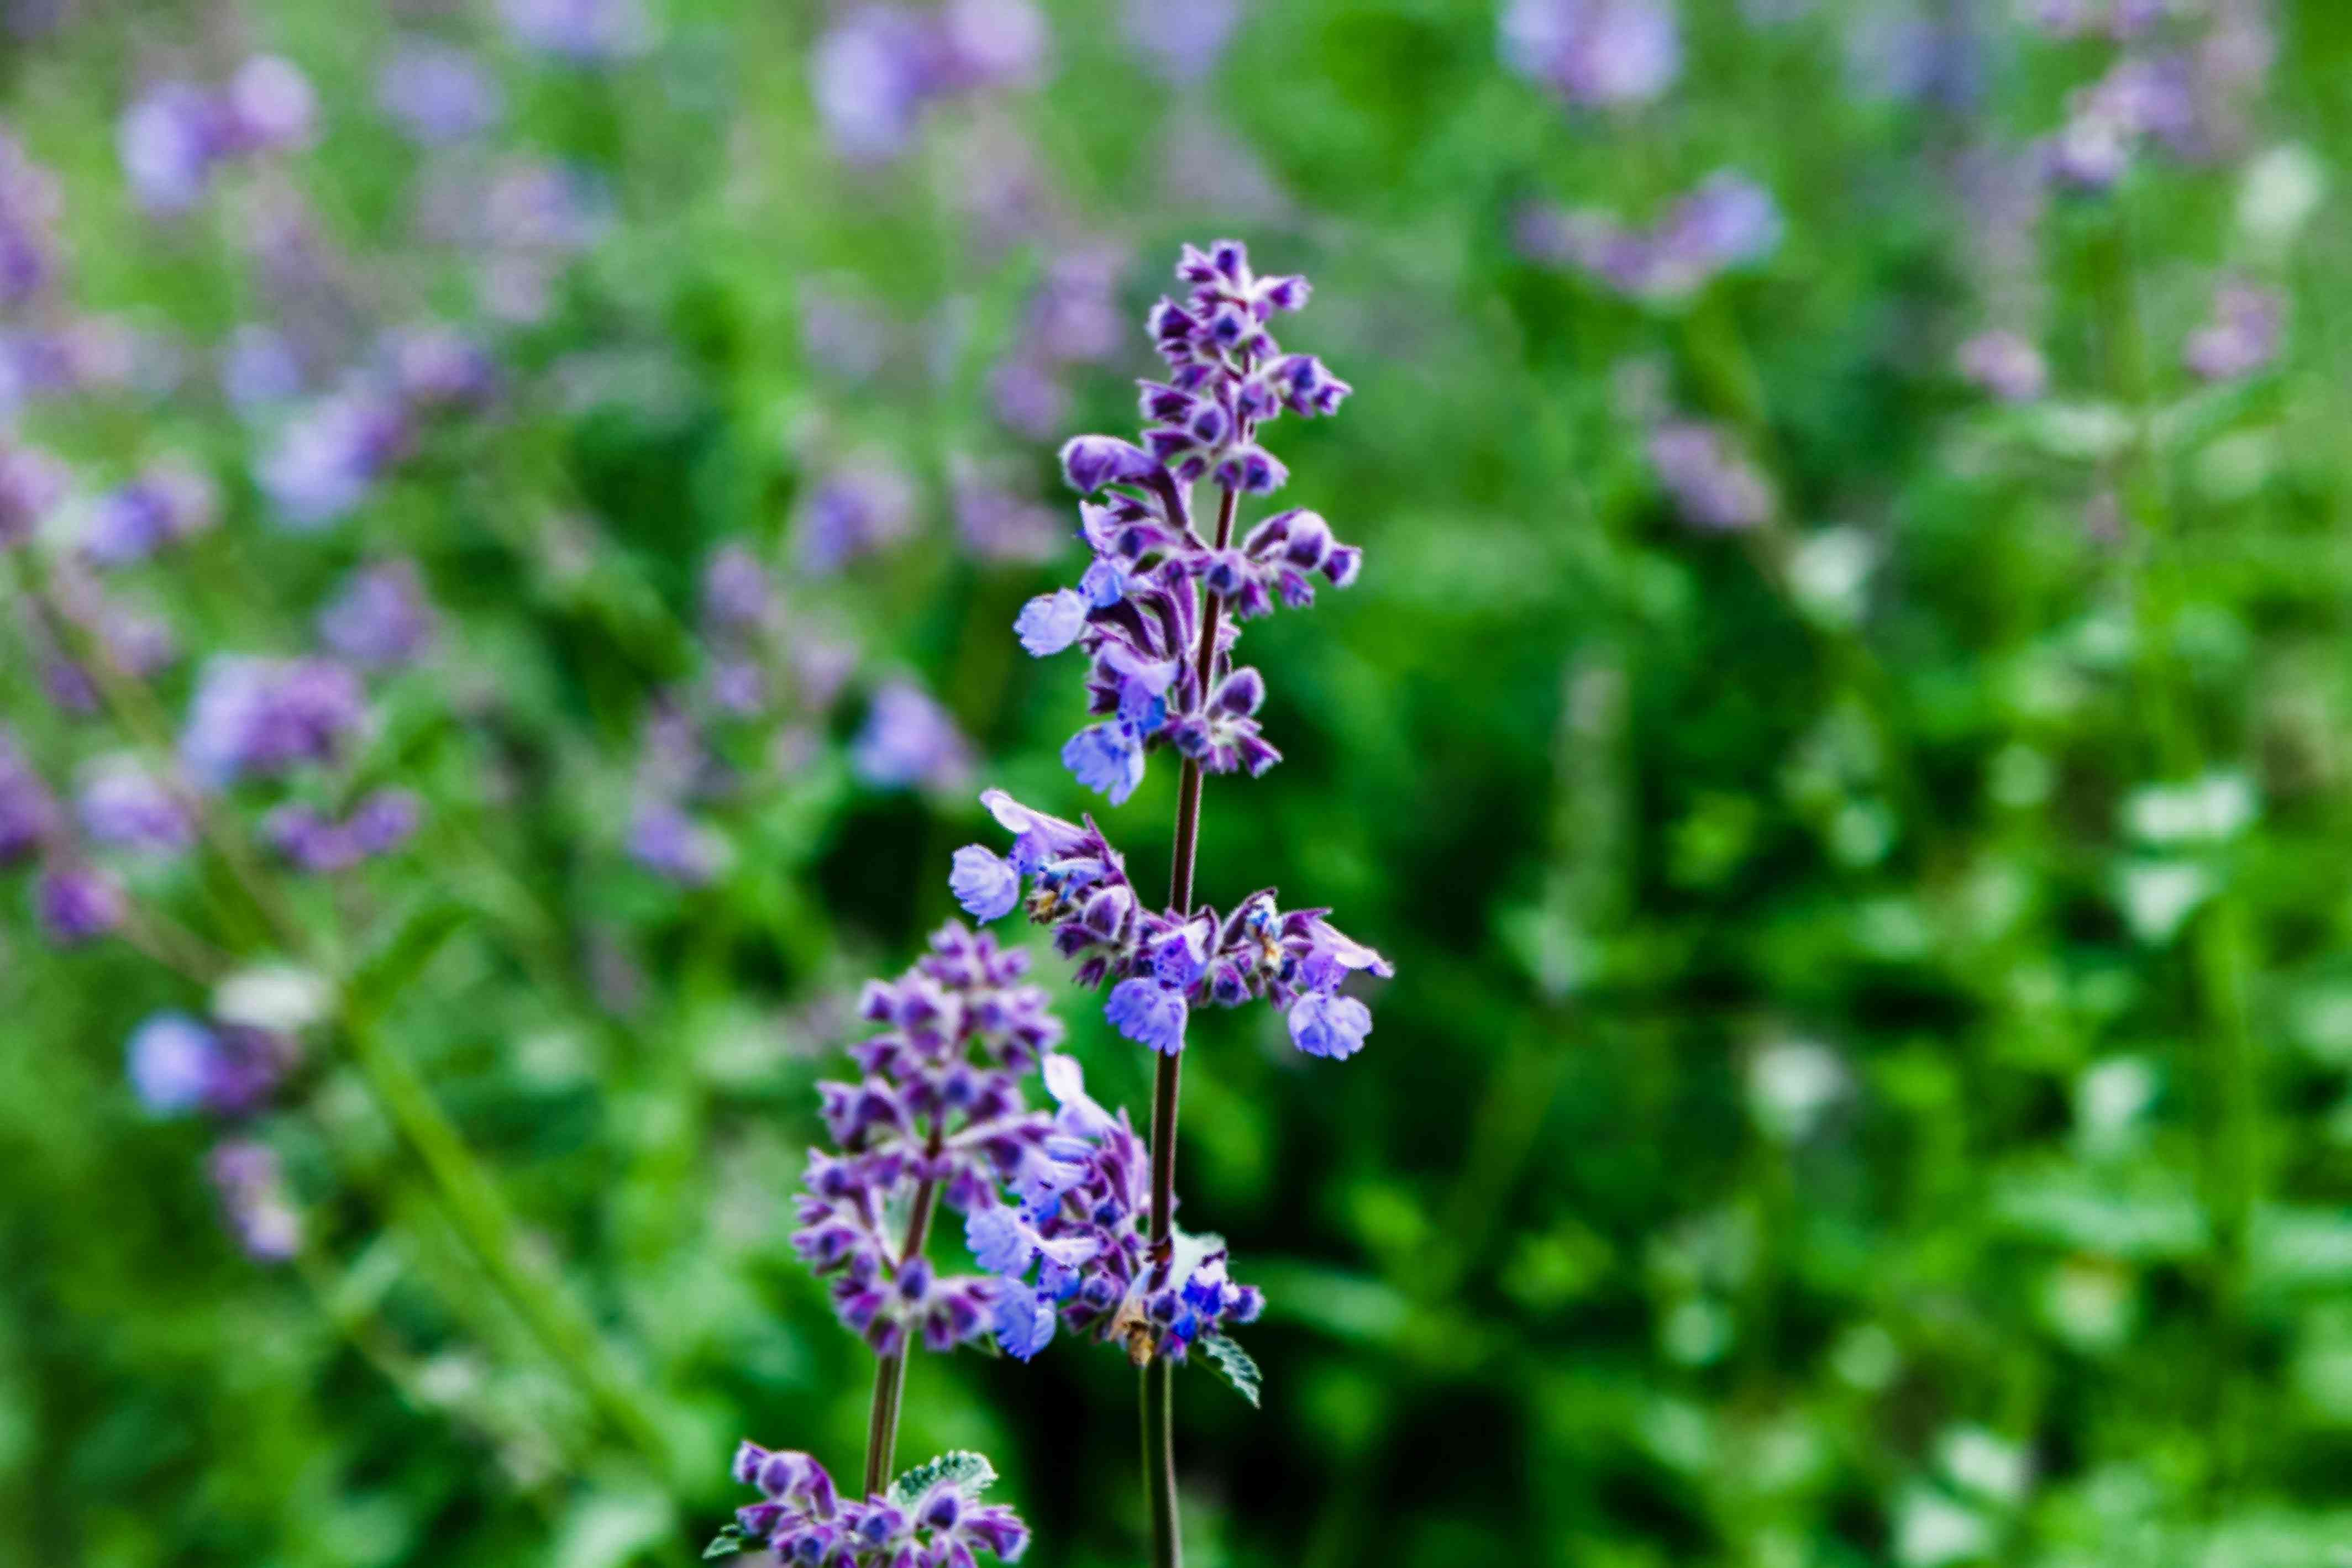 Catmint plant spike with small lavender-blue flowers and buds closeup